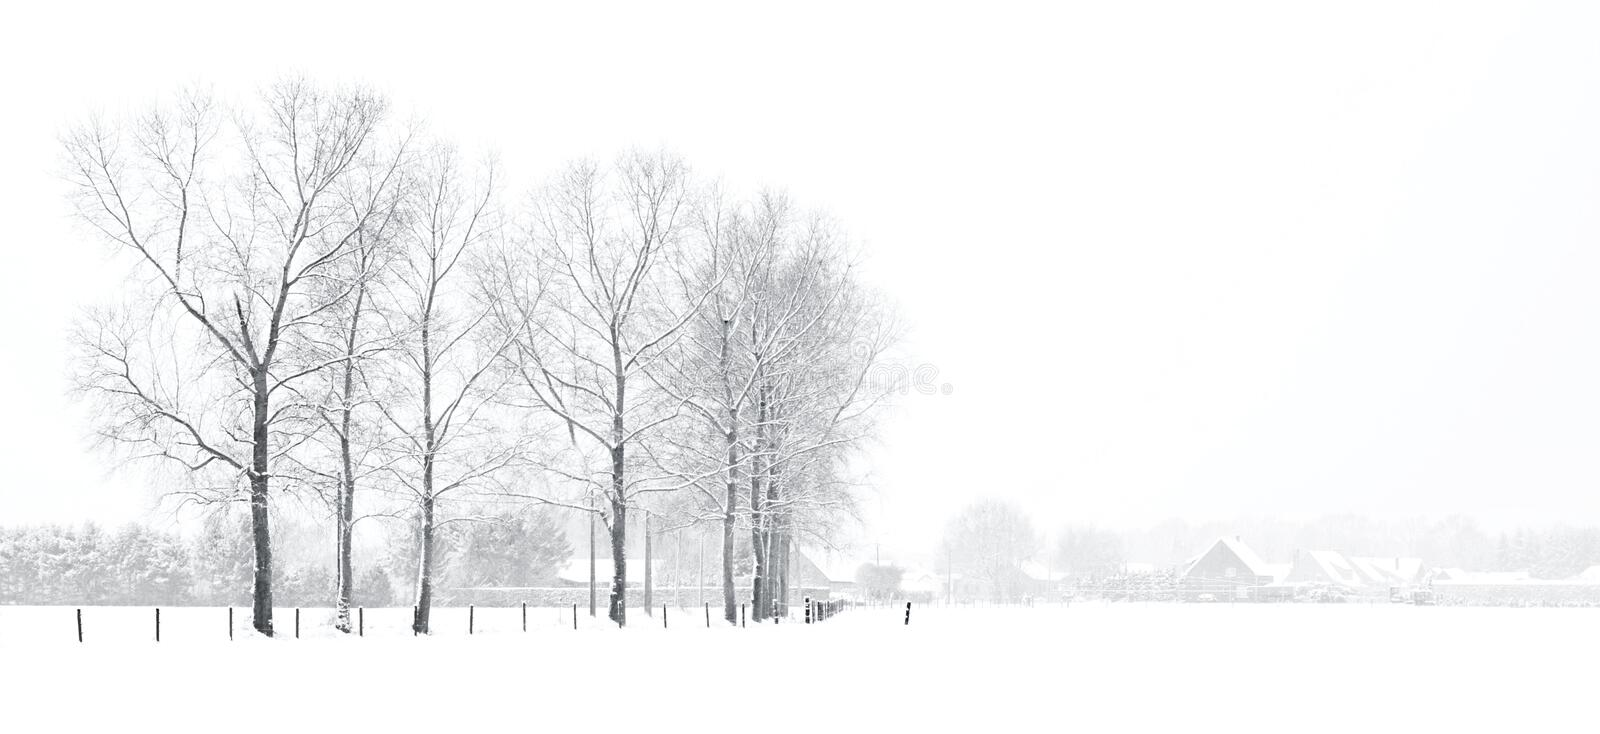 Winter landscape with houses. Lane of trees in winter landscape - tranquil scene stock photography